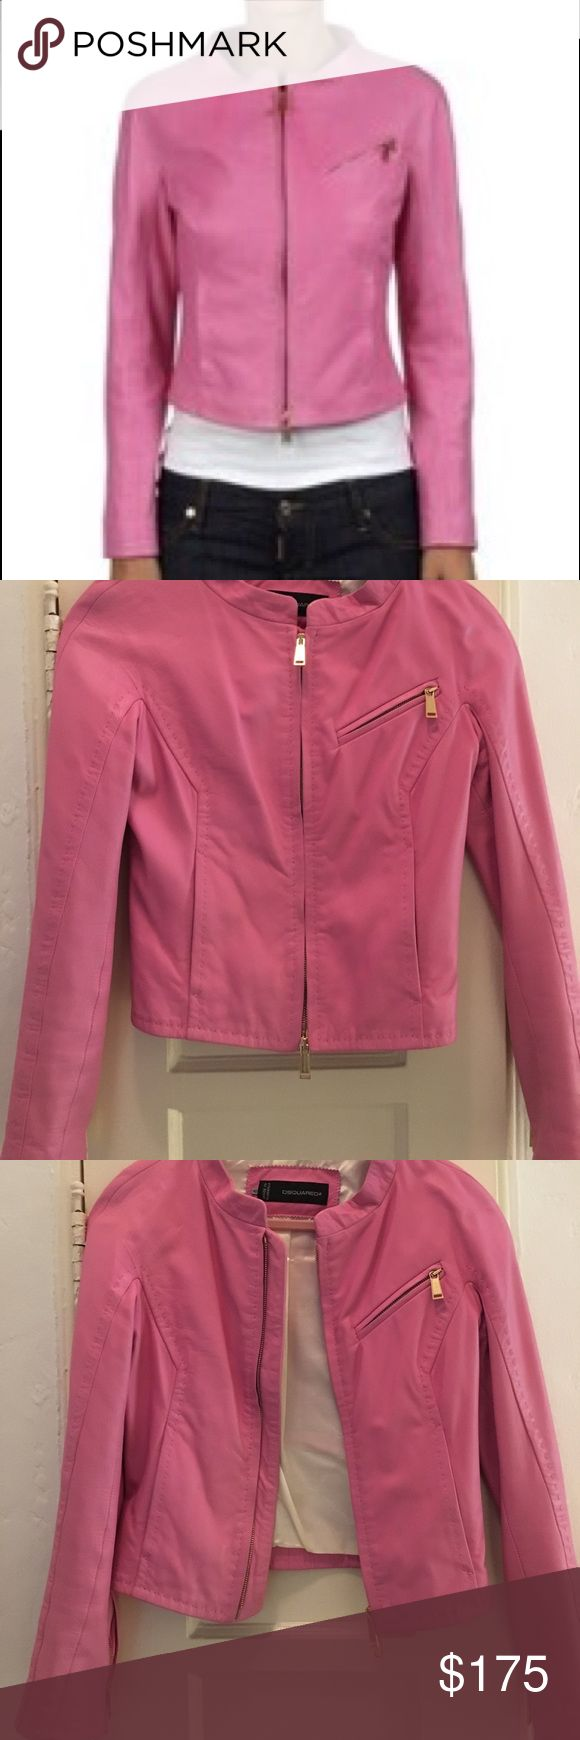 Gorgeous pink leather jacket by DSQUARED2 Beautiful calf skin leather jacket. Pink with pink stitching and white lining. Made in Romania. A stunning spring/summer statement piece. In great condition. DSQUARED Jackets & Coats